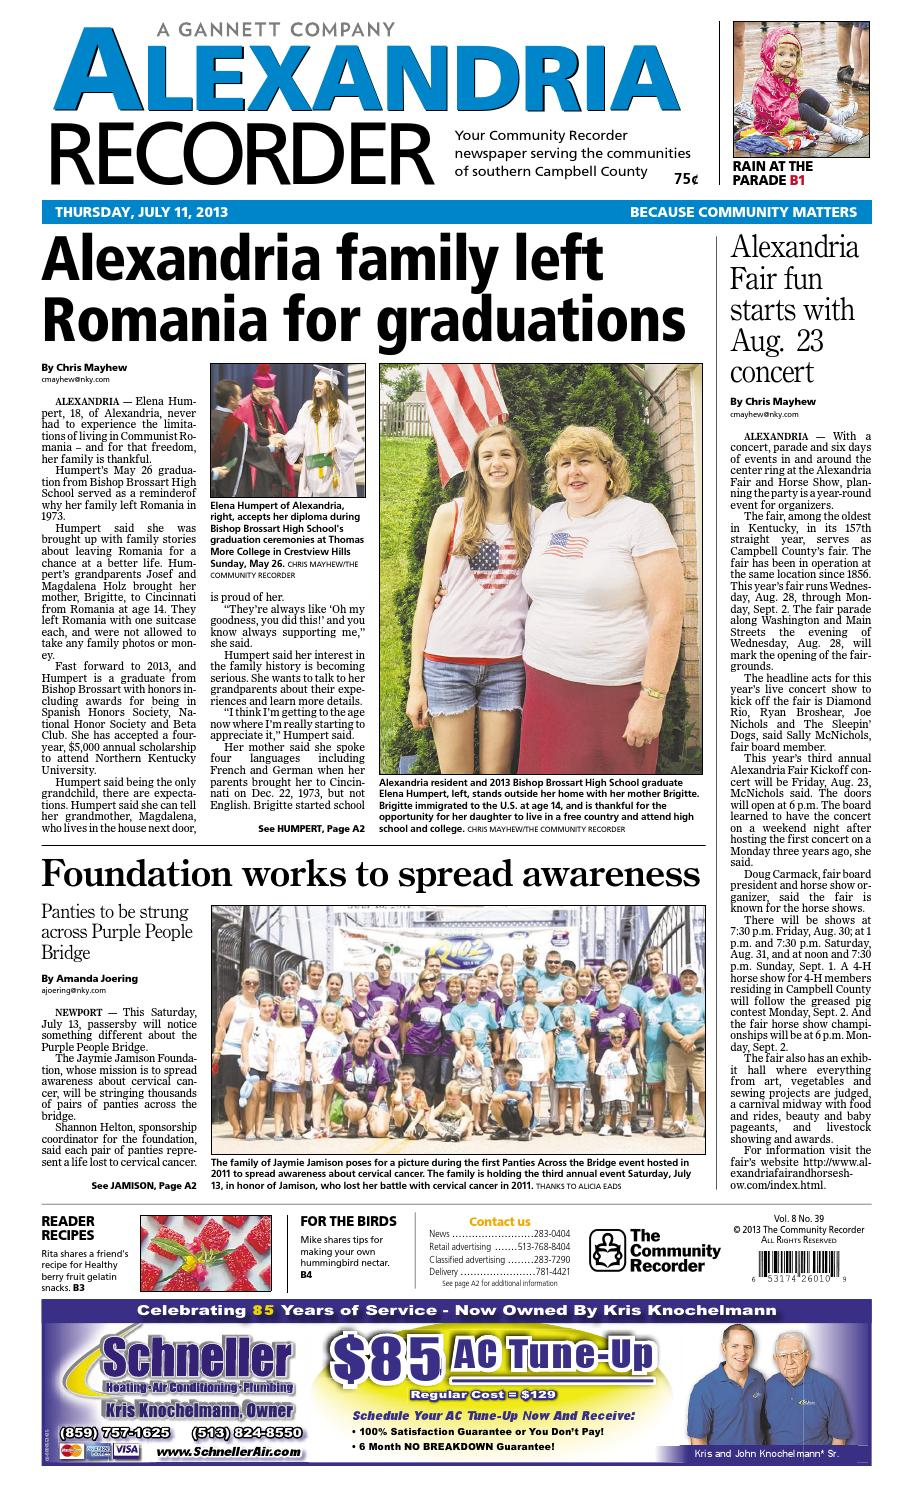 Alexandria recorder 071113 by Enquirer Media - issuu